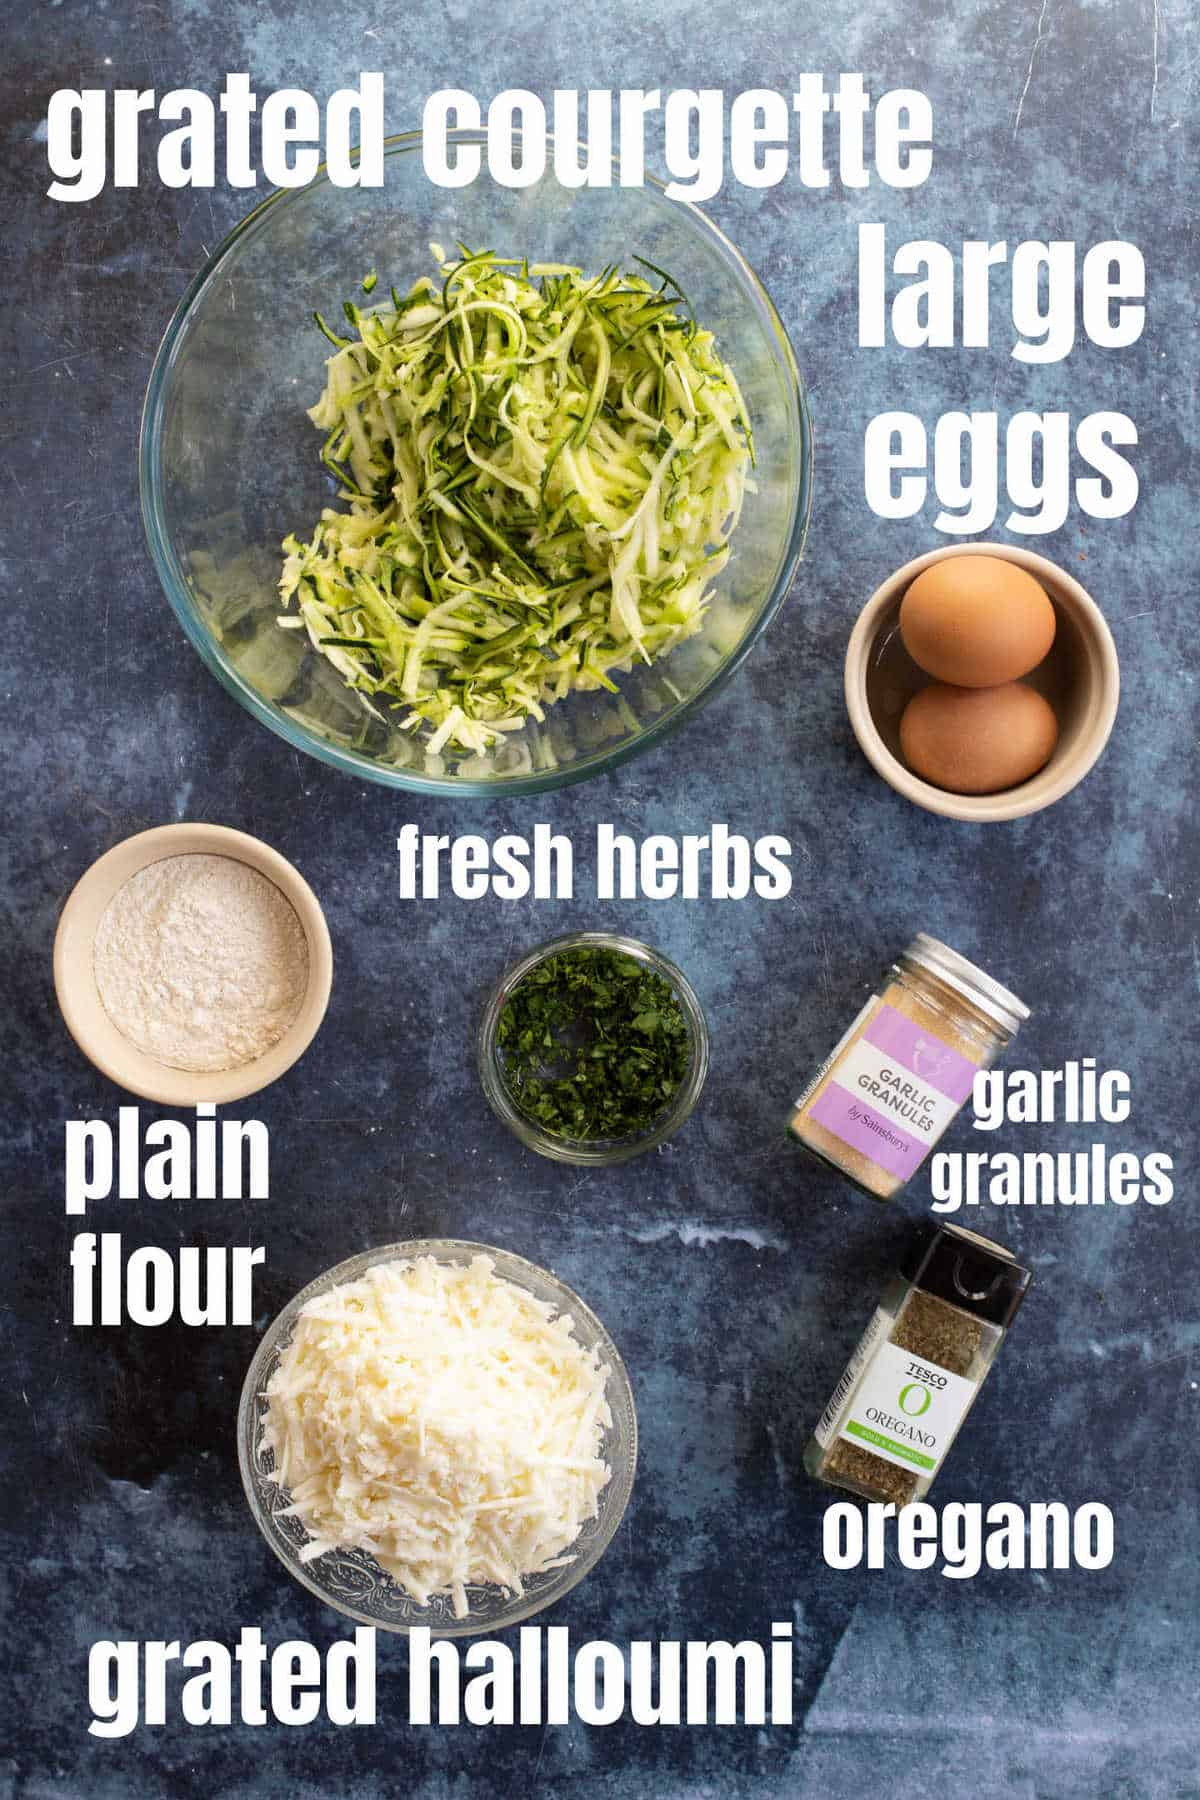 Ingredients for courgette fritters.